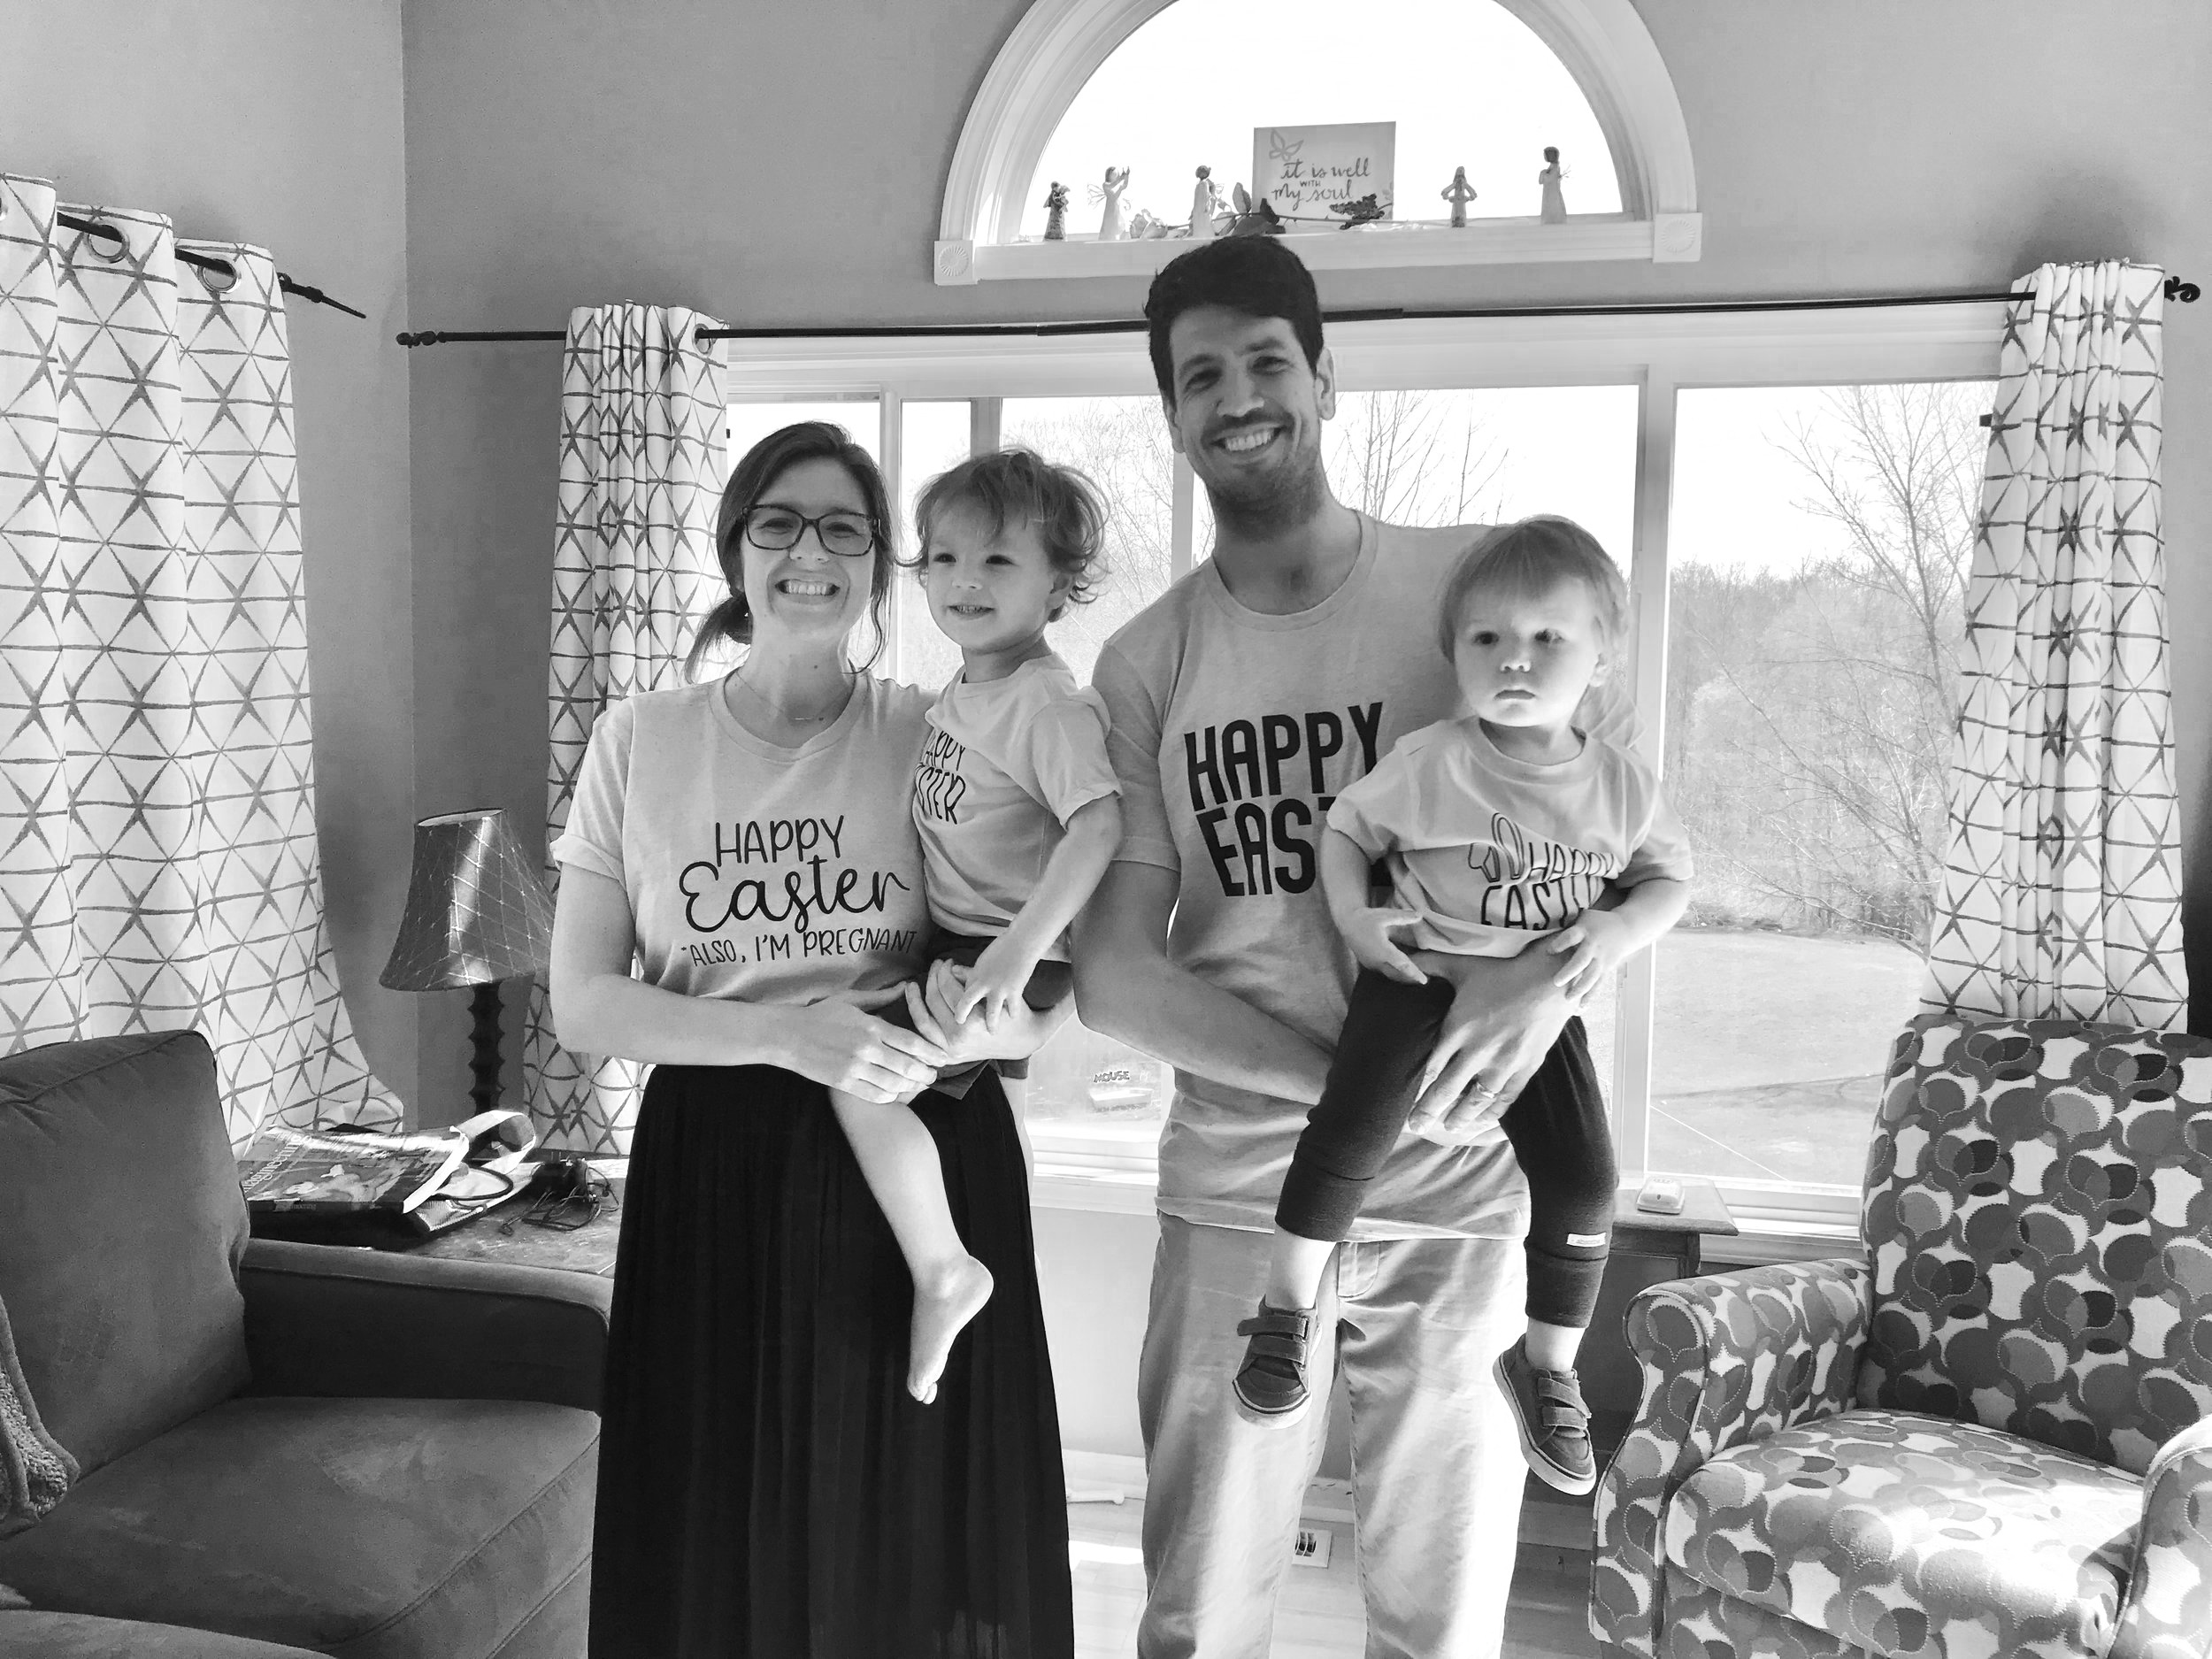 Announcing our pregnancy to family. (Notice my shirt)